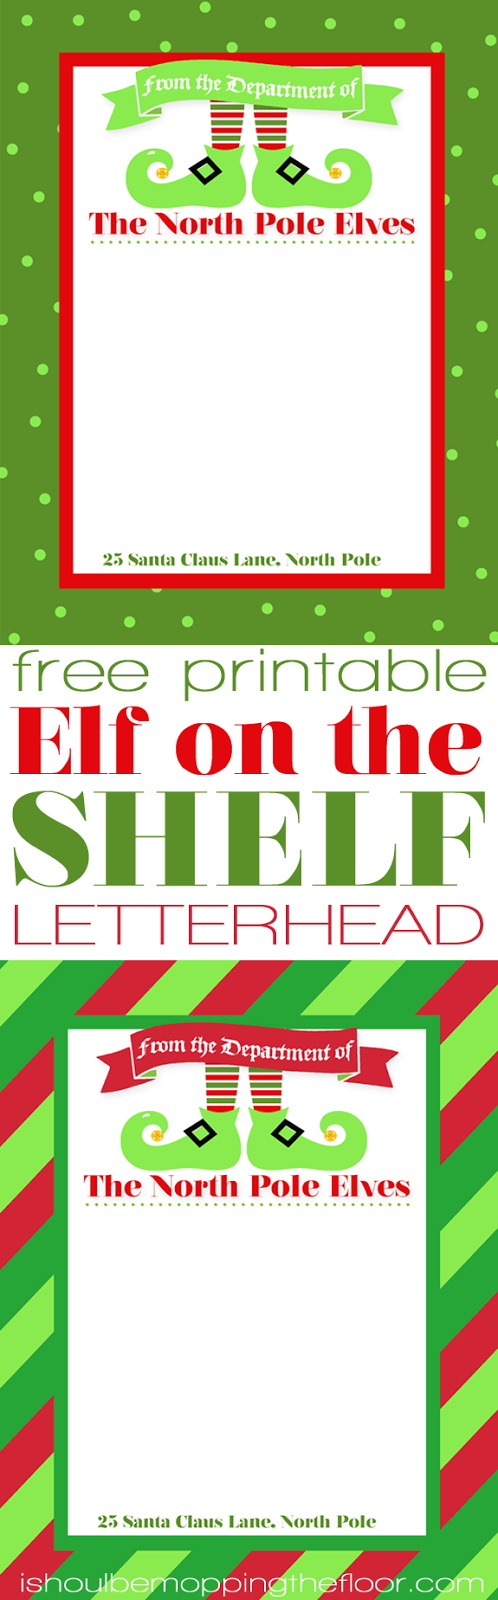 I Should Be Mopping The Floor Free Printable Elf On The